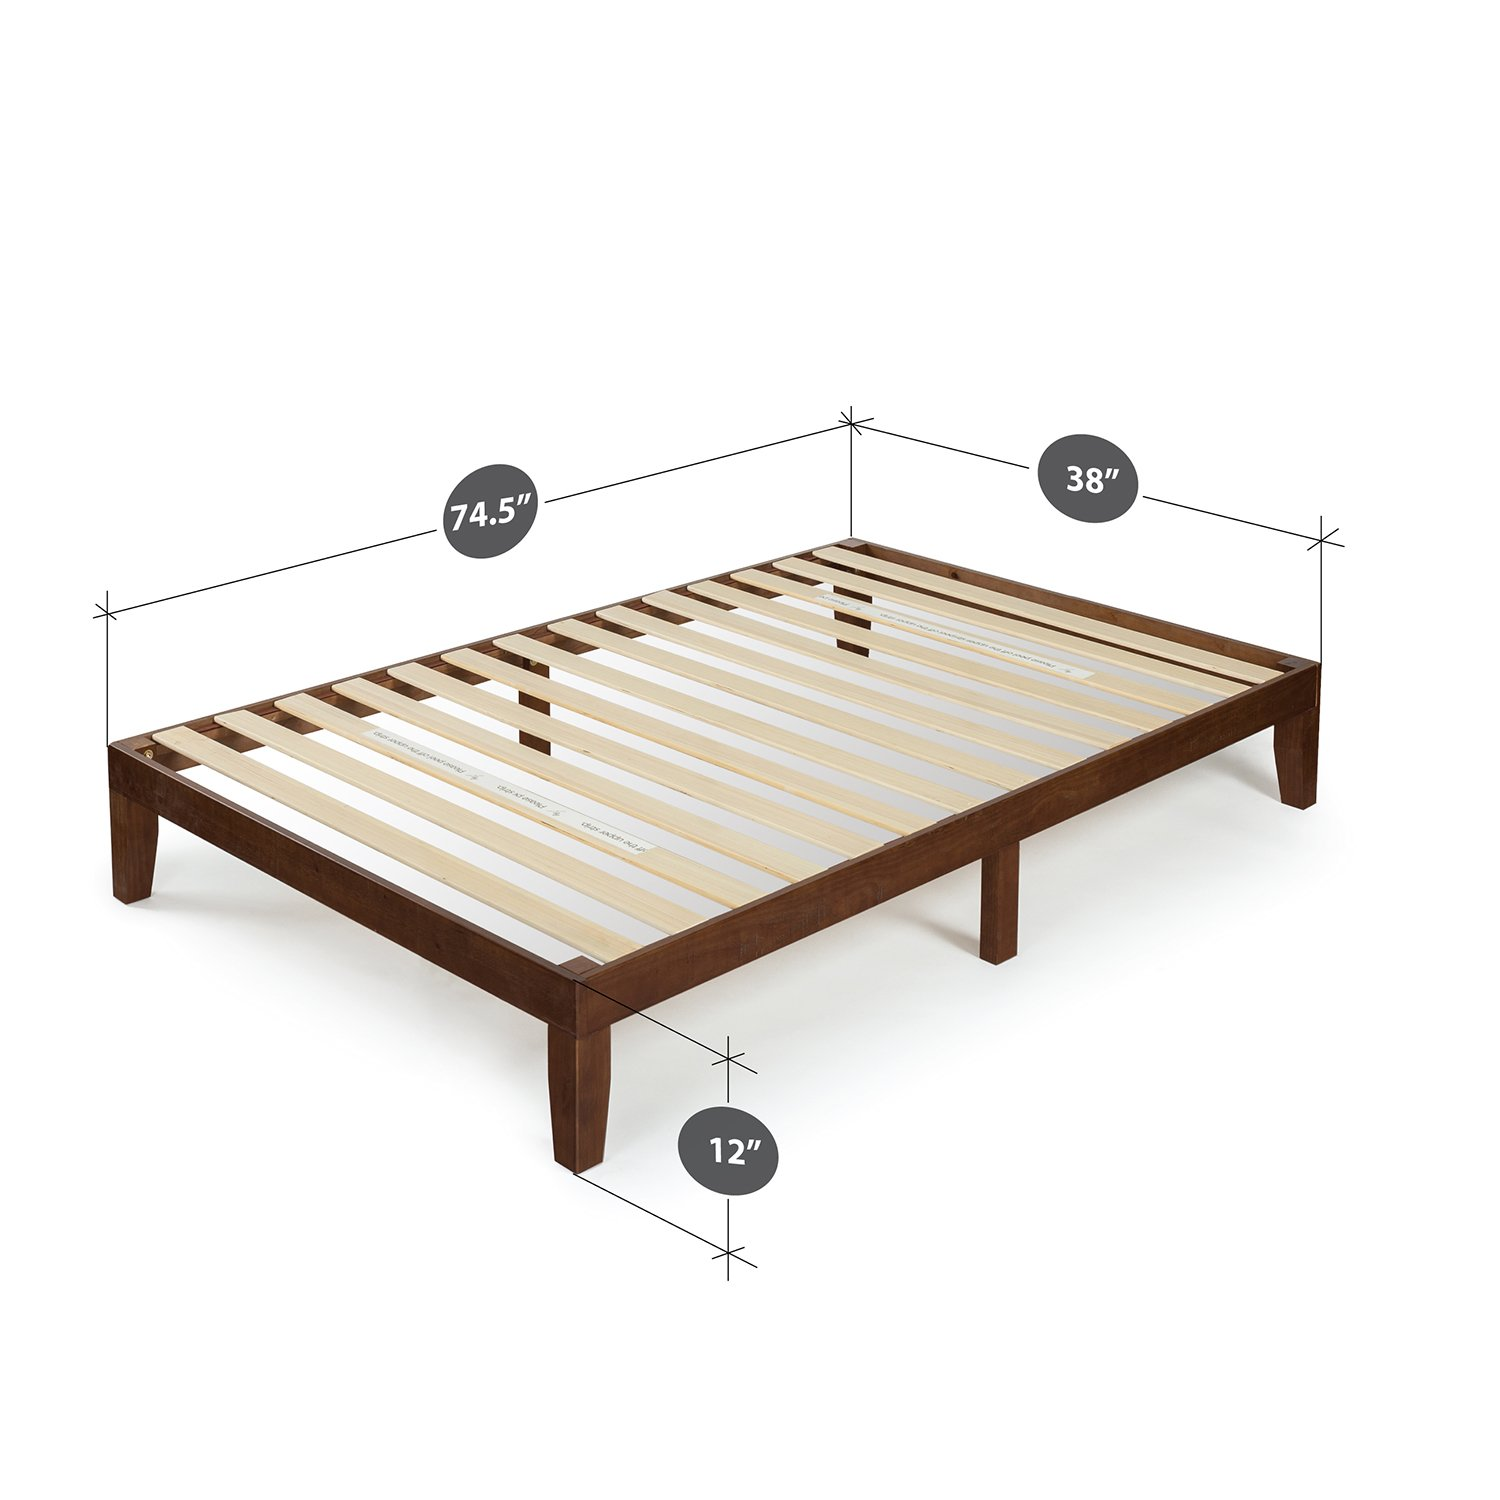 Zinus 12 Inch Wood Platform Bed / No Boxspring Needed / Wood Slat Support / Antique Espresso Finish, Twin by Zinus (Image #2)